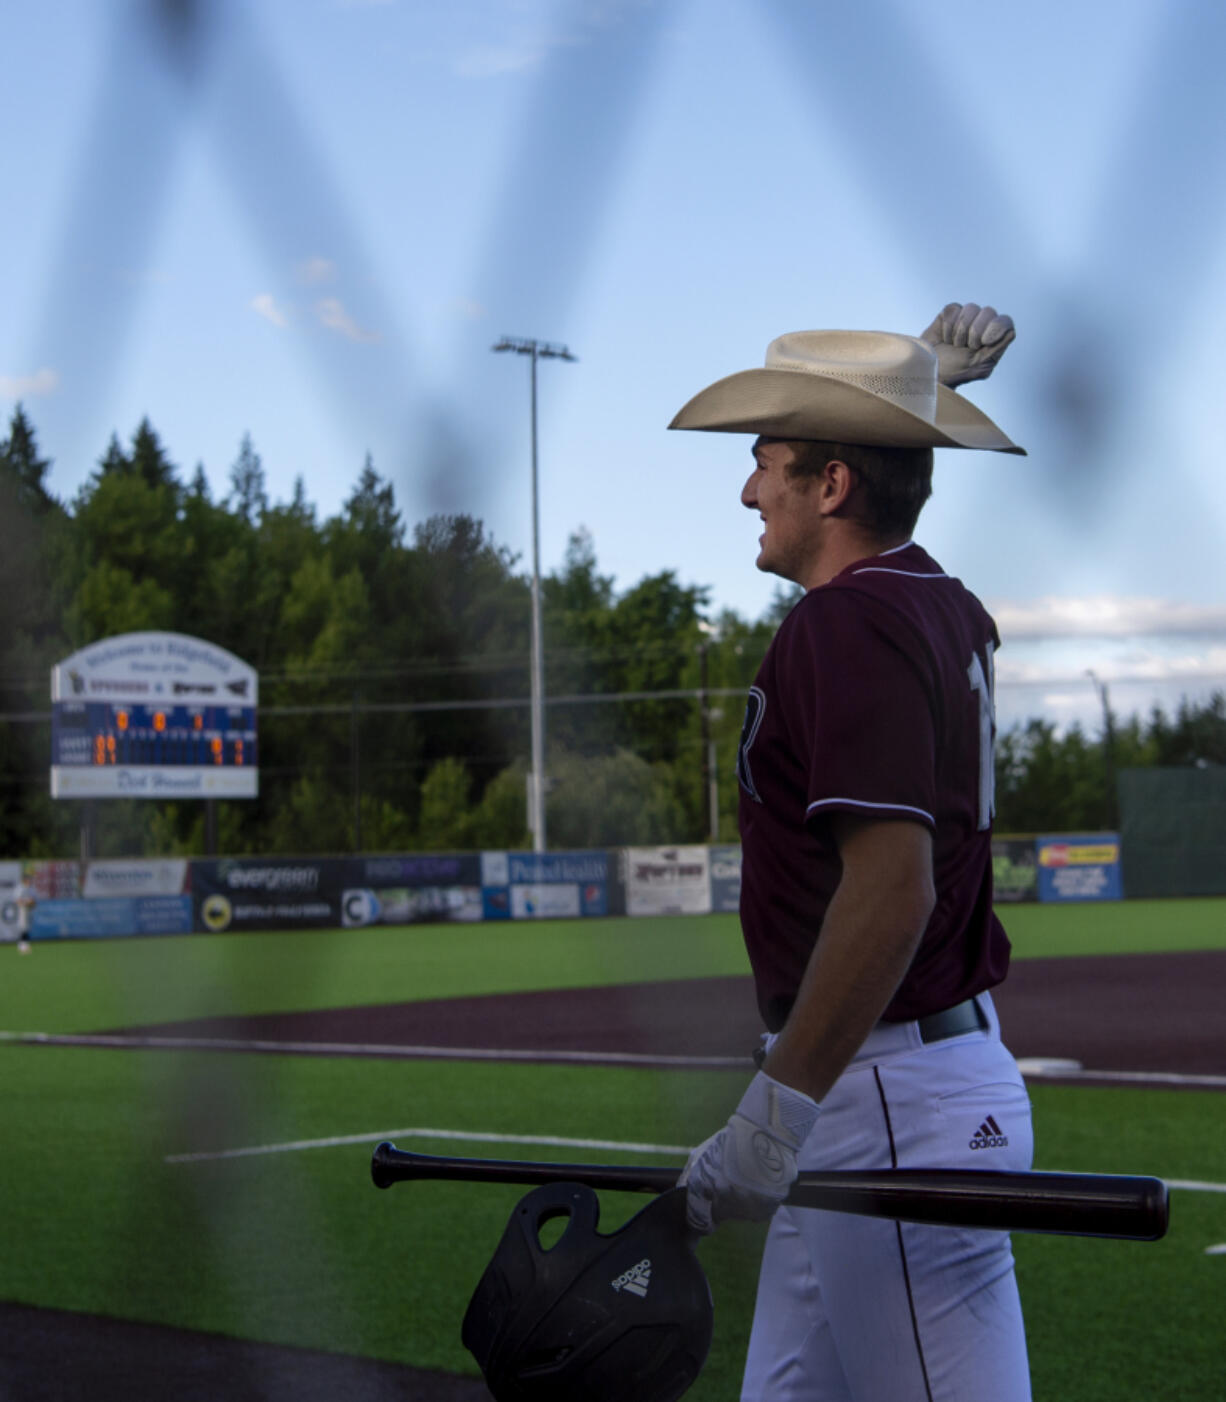 Ridgefield's Kody Darcy pretends to use a lasso while putting on a home run hat after clearing the center-field fence in the second inning in a West Coast League baseball game on Tuesday, June 8, 2021, at the Ridgefield Outdoor Recreation Complex. Ridgefield won 6-3 to improve to 4-0 on the season.